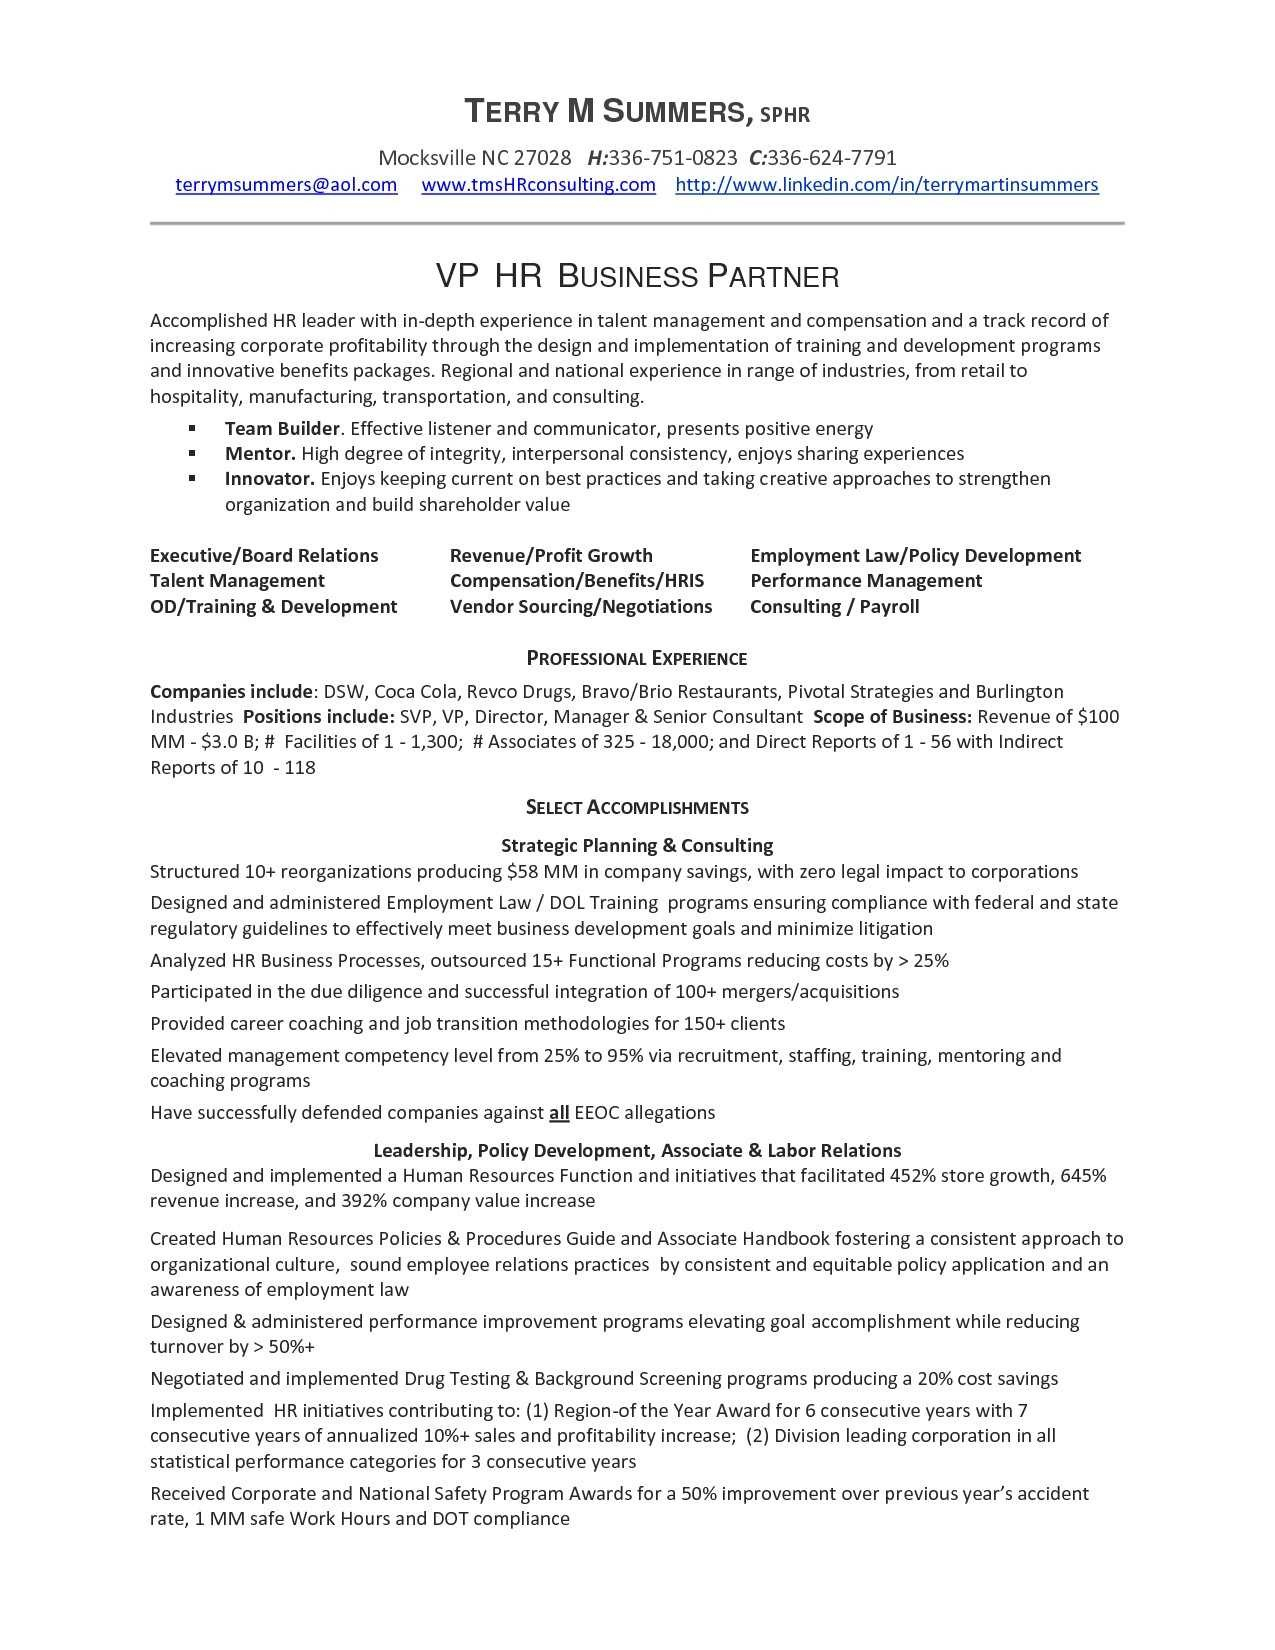 Letter Of Collaboration Template - Partnership Business Agreement Template Valid Sample Business